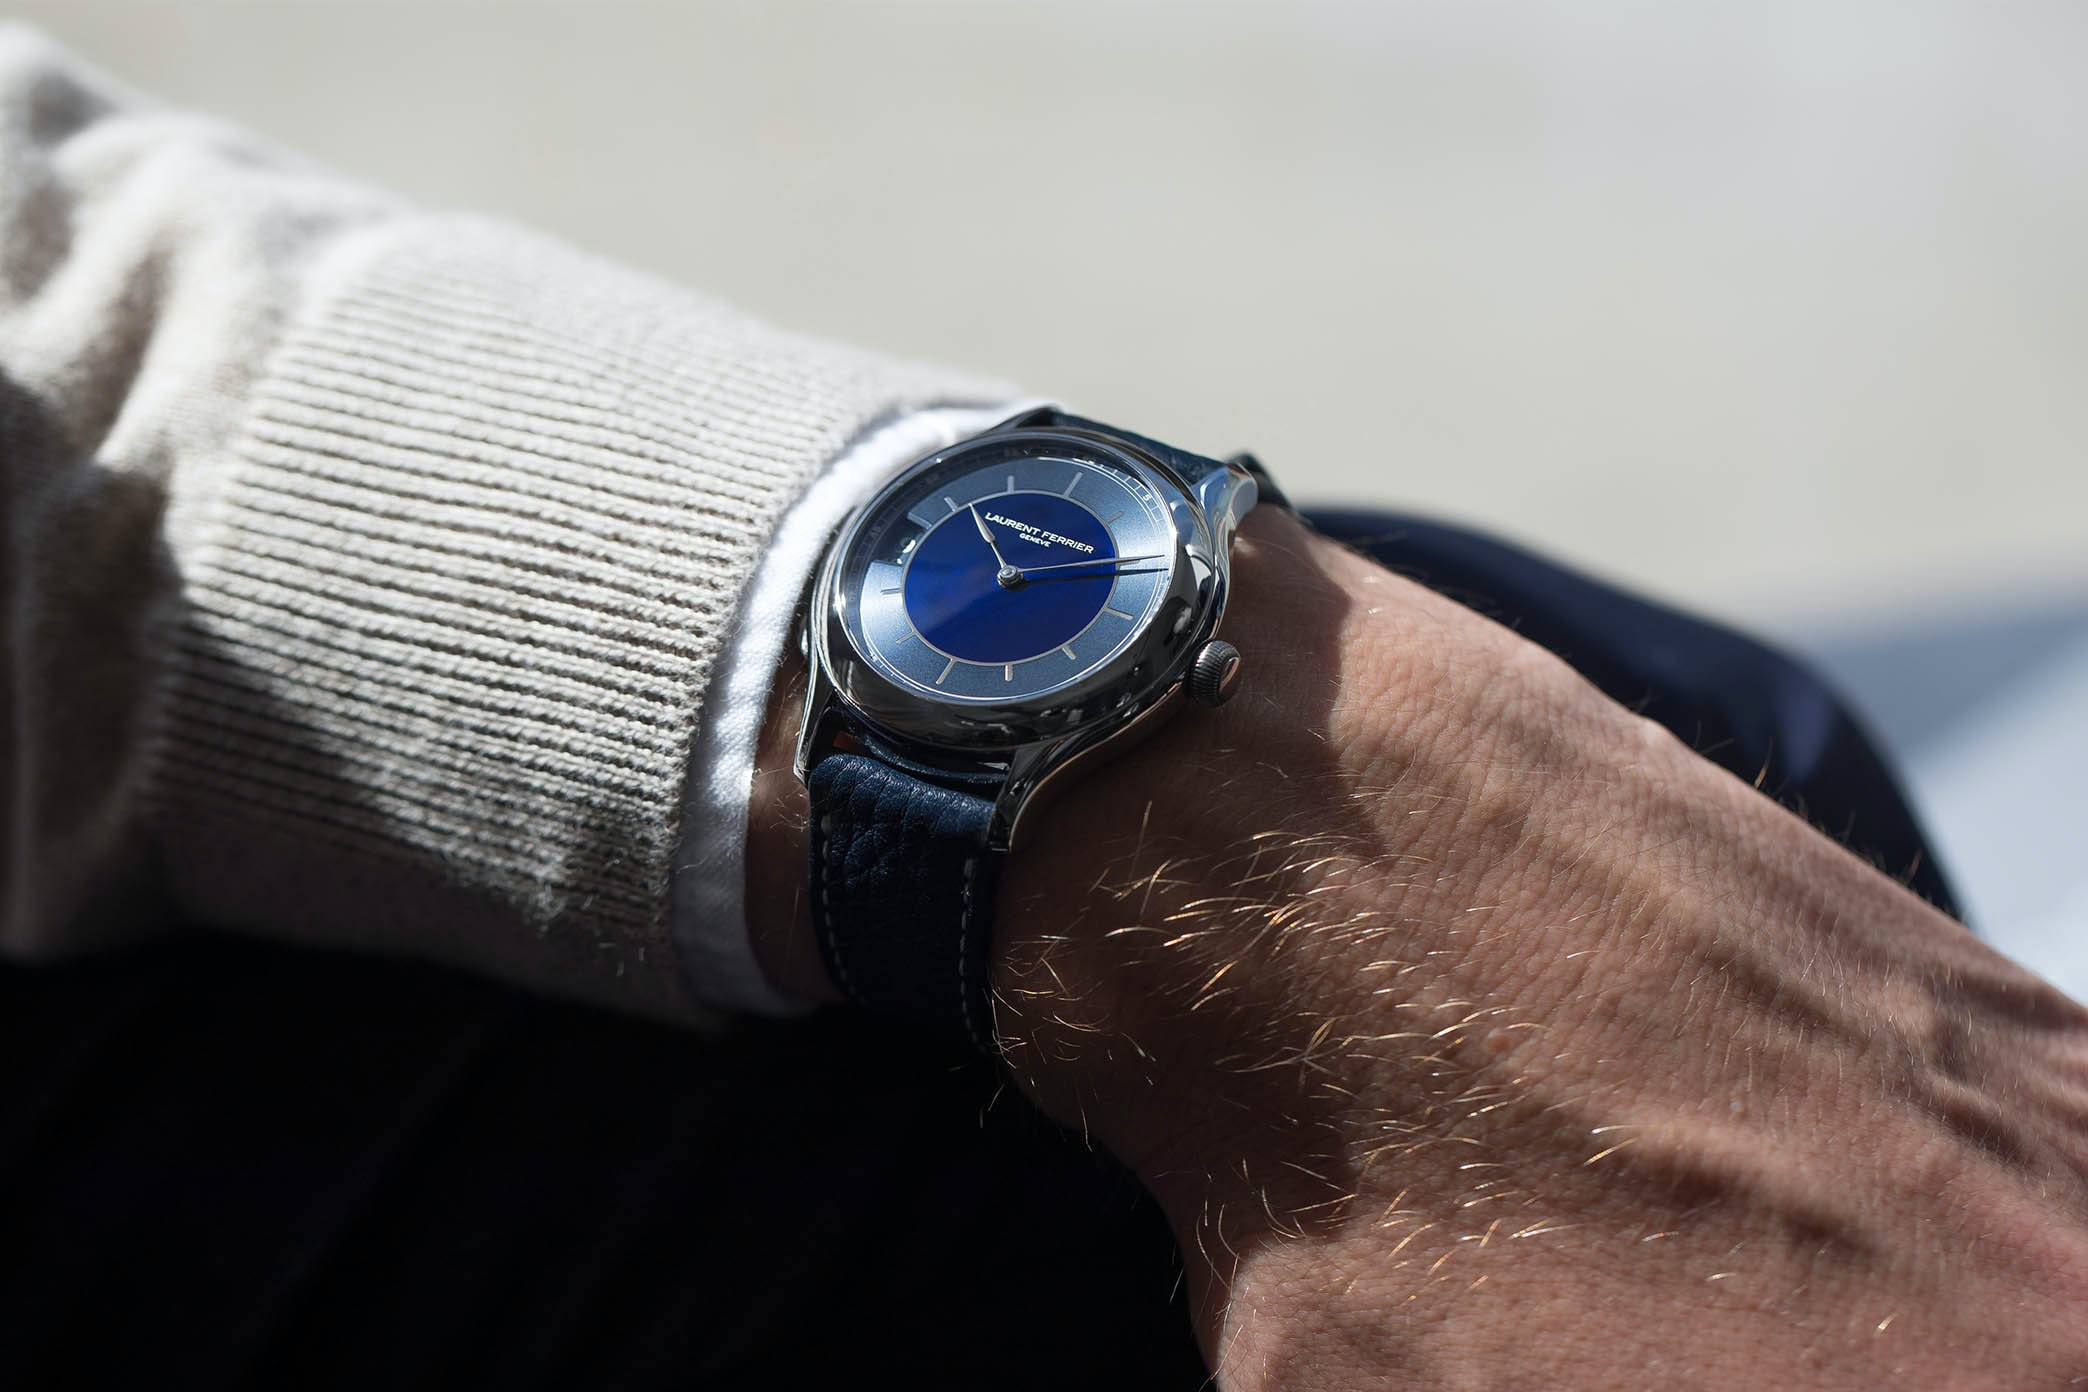 In The Shop – A Laurent Ferrier Traveller Limited Edition For HODINKEE Sold For 18% Above Retail At The Phillips Geneva Watch Auction: Eight hodinkee 001